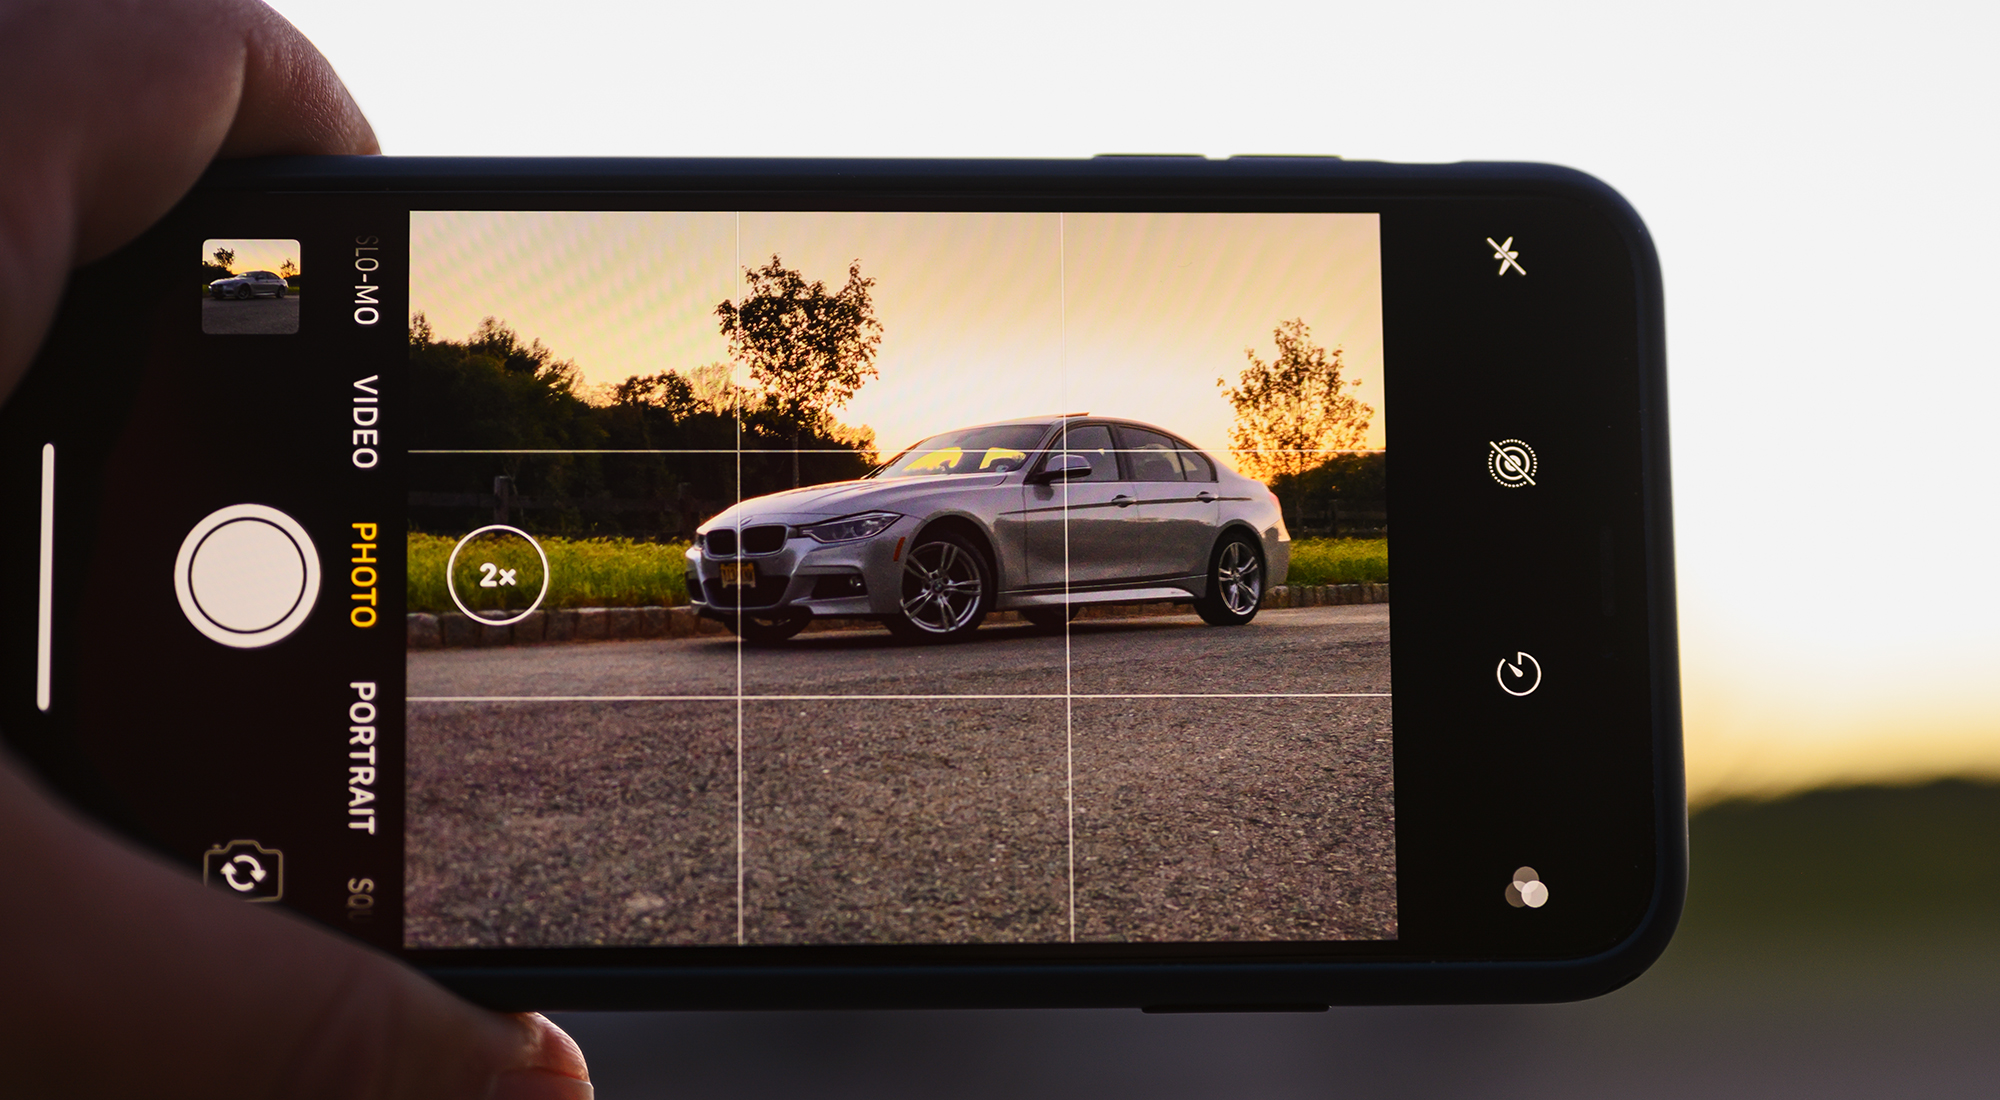 Five tips for pro automotive photos with your iPhone